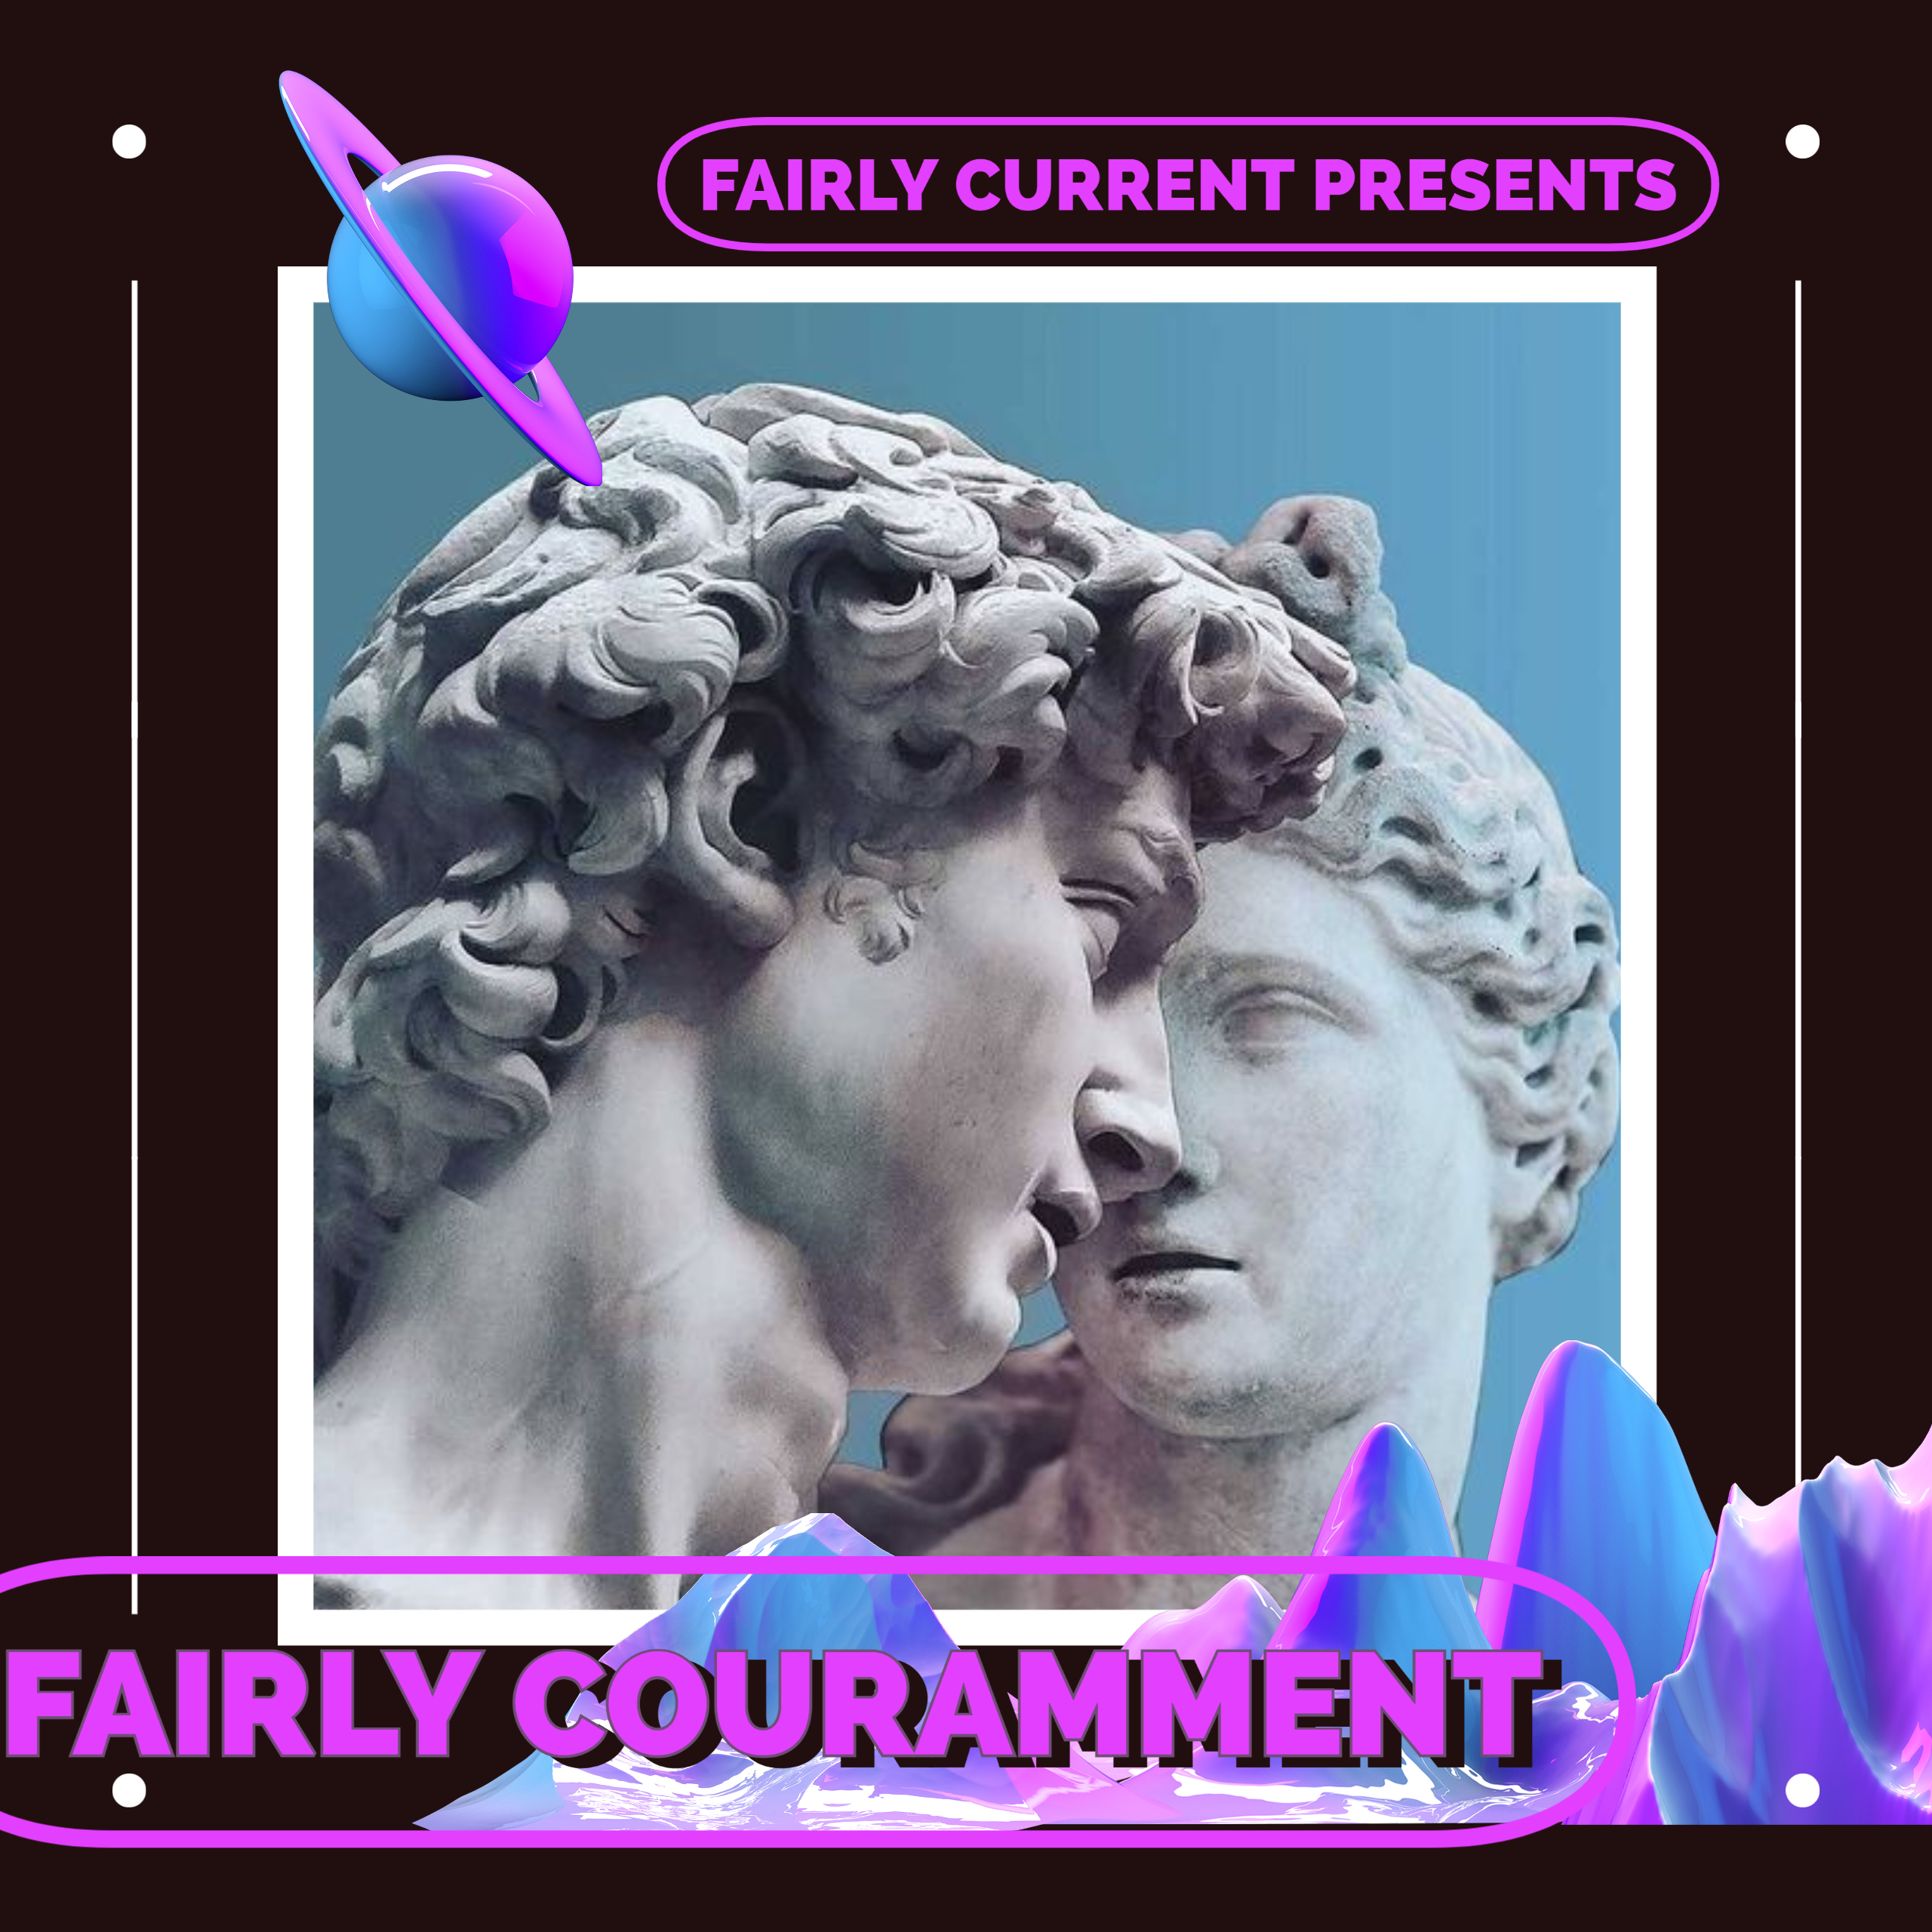 fairlycurrent presents: Fairly  'Couramment'